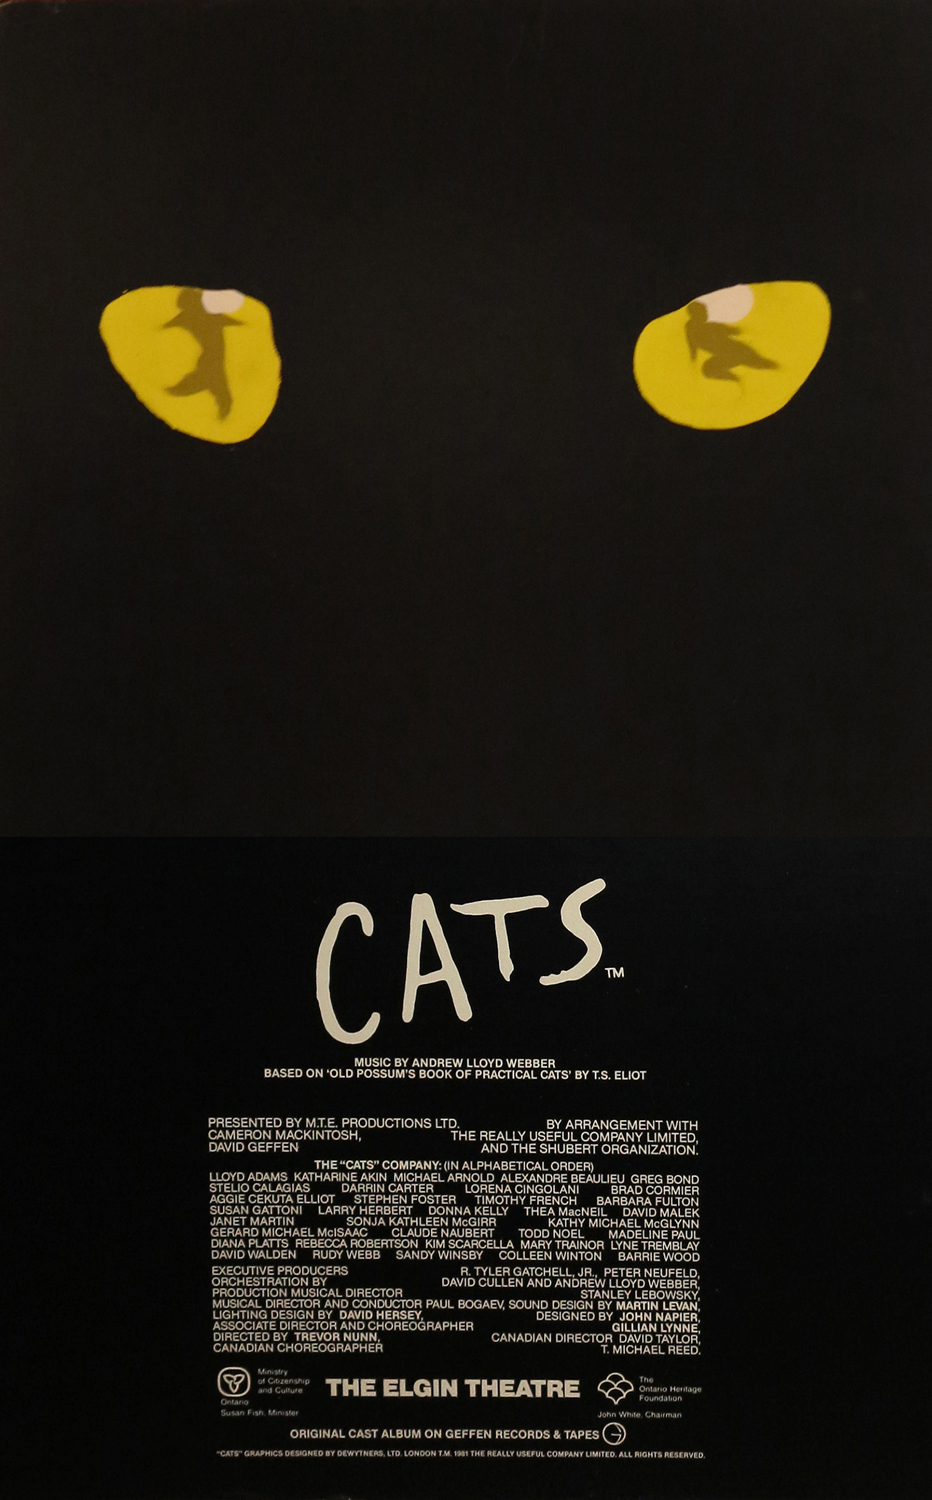 The original Toronto production of 'Cats' at the Elgin Theatre, 1985.